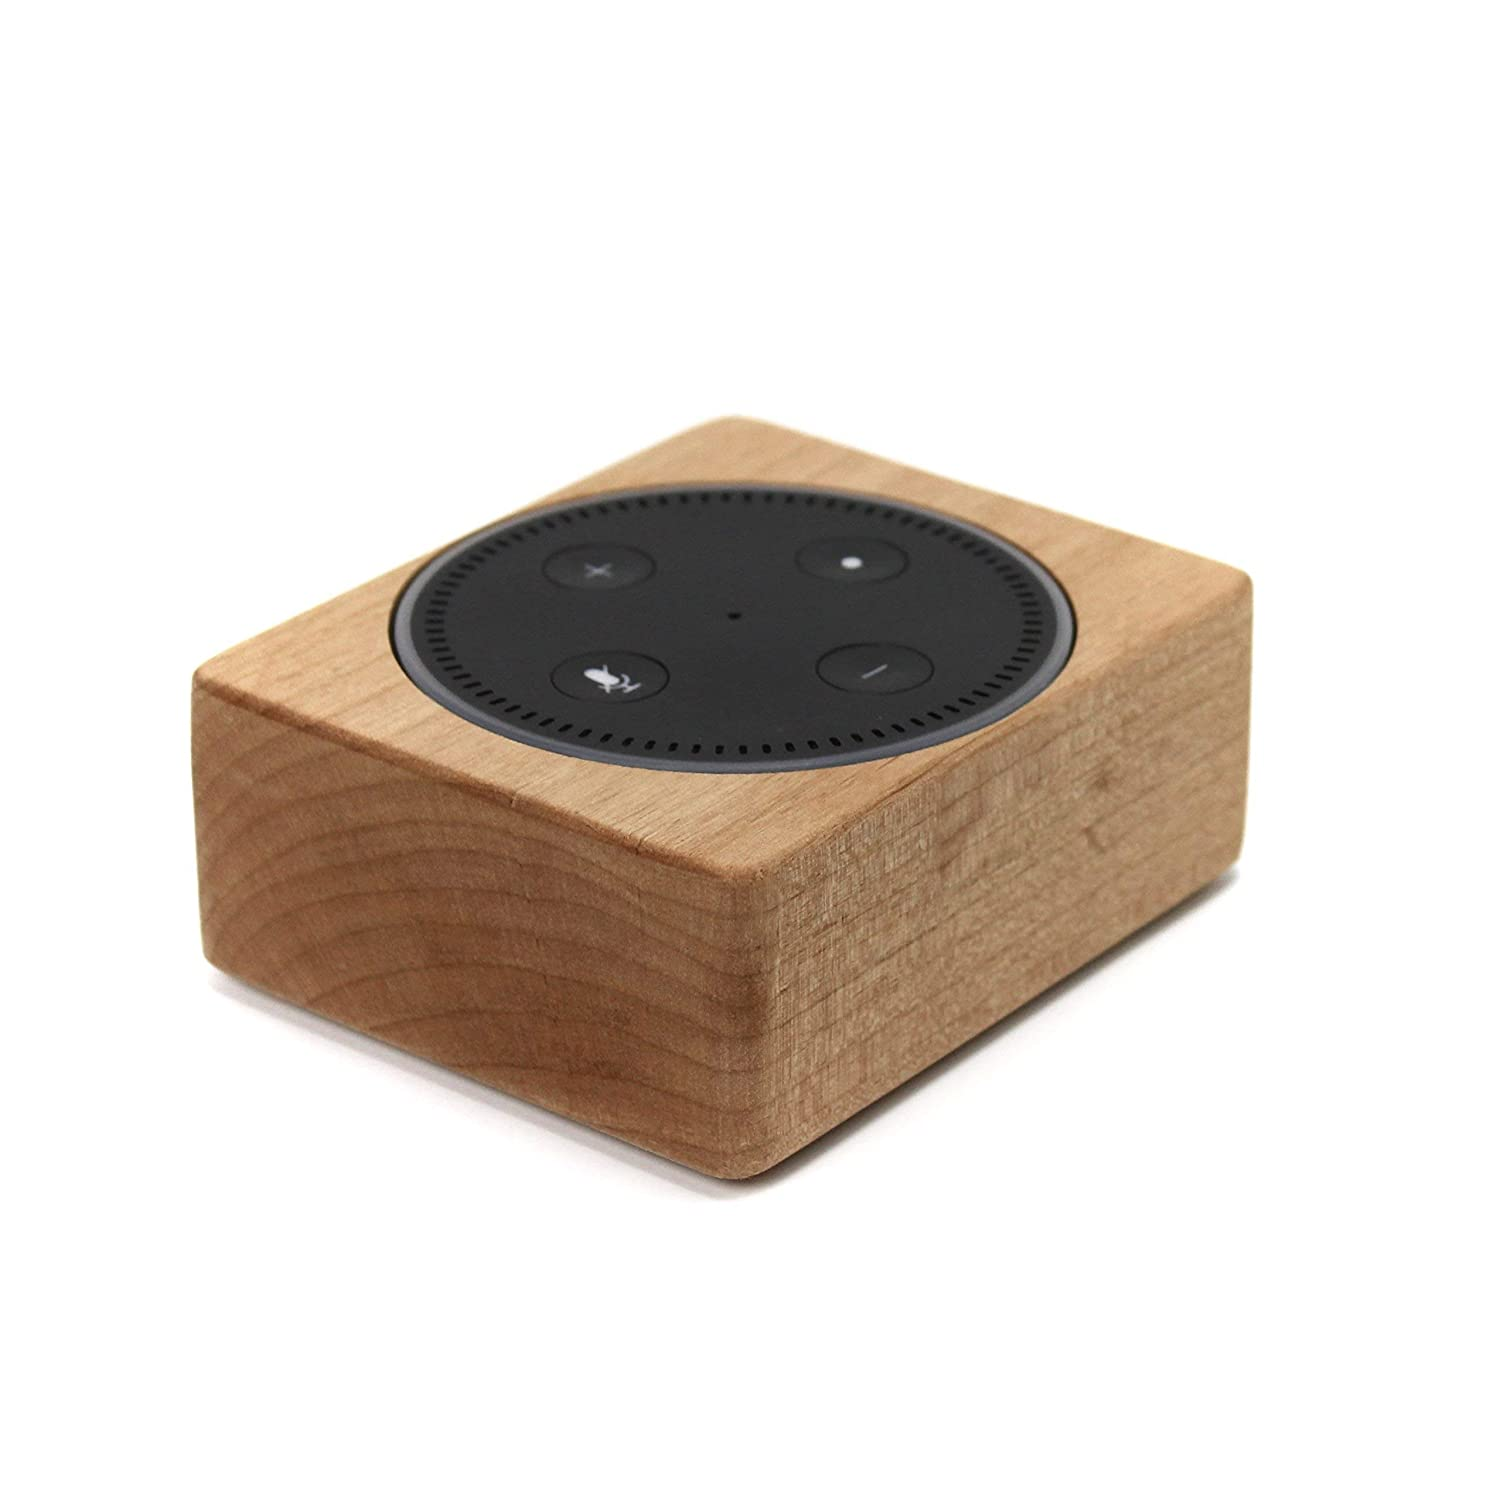 Echo Dot Wood Stand 2nd Gen, Handmade in the USA, Solid Wood Holder, Rustic Hardwood Stand for Alexa, Decorative Protective Case Made from Alder Wood, Natural Finish